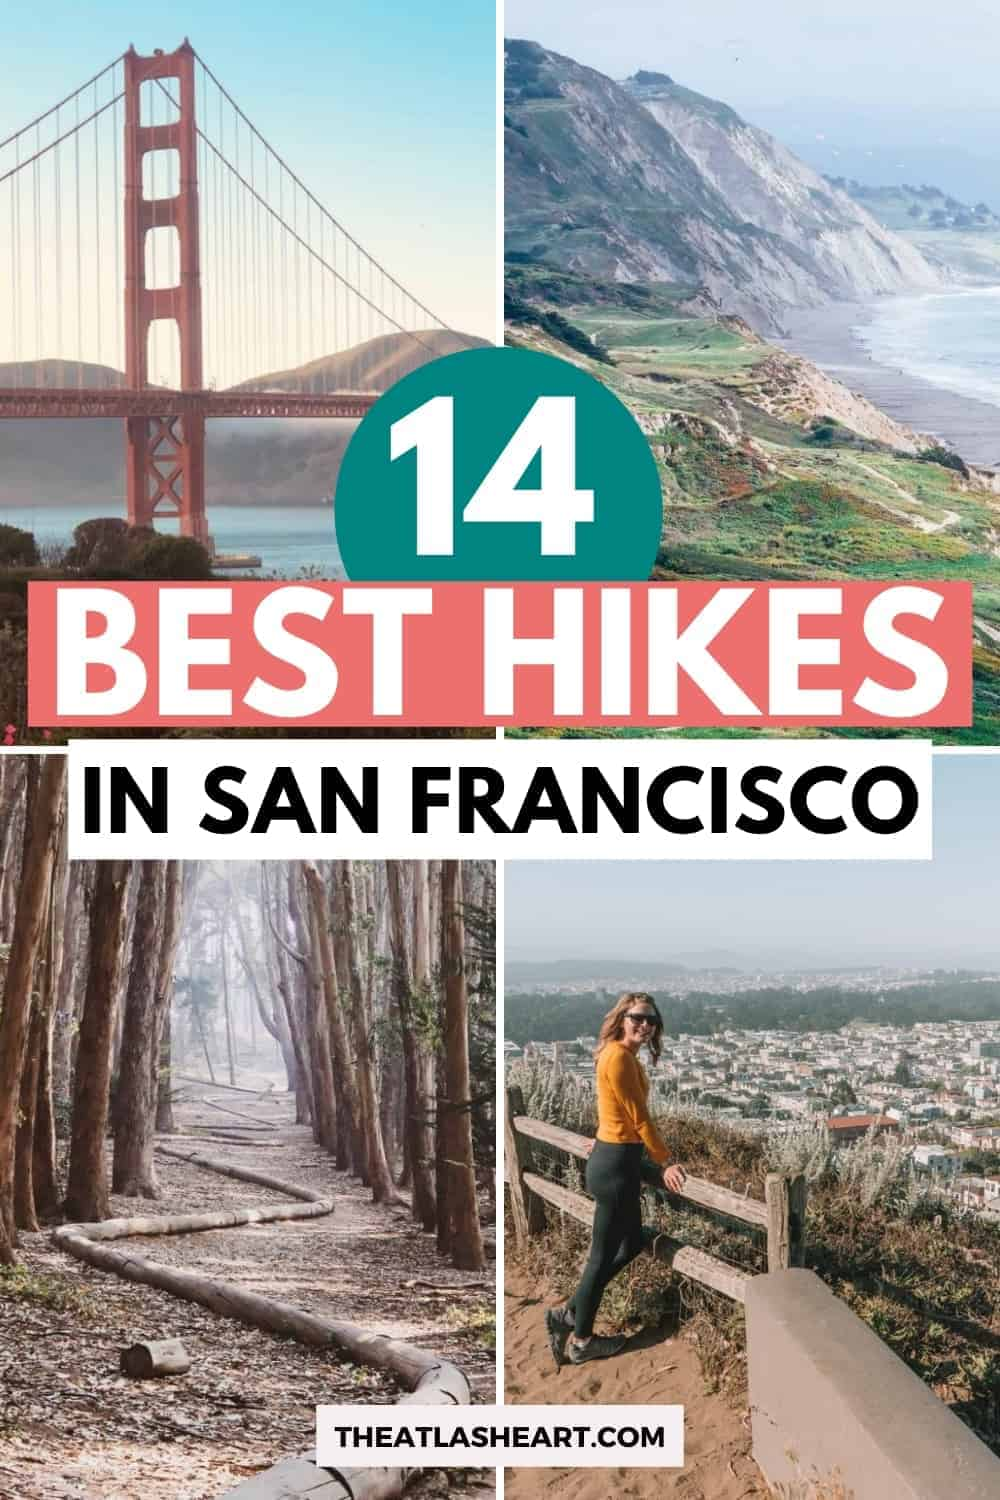 14 Best Hikes in San Francisco, California (From a Local)